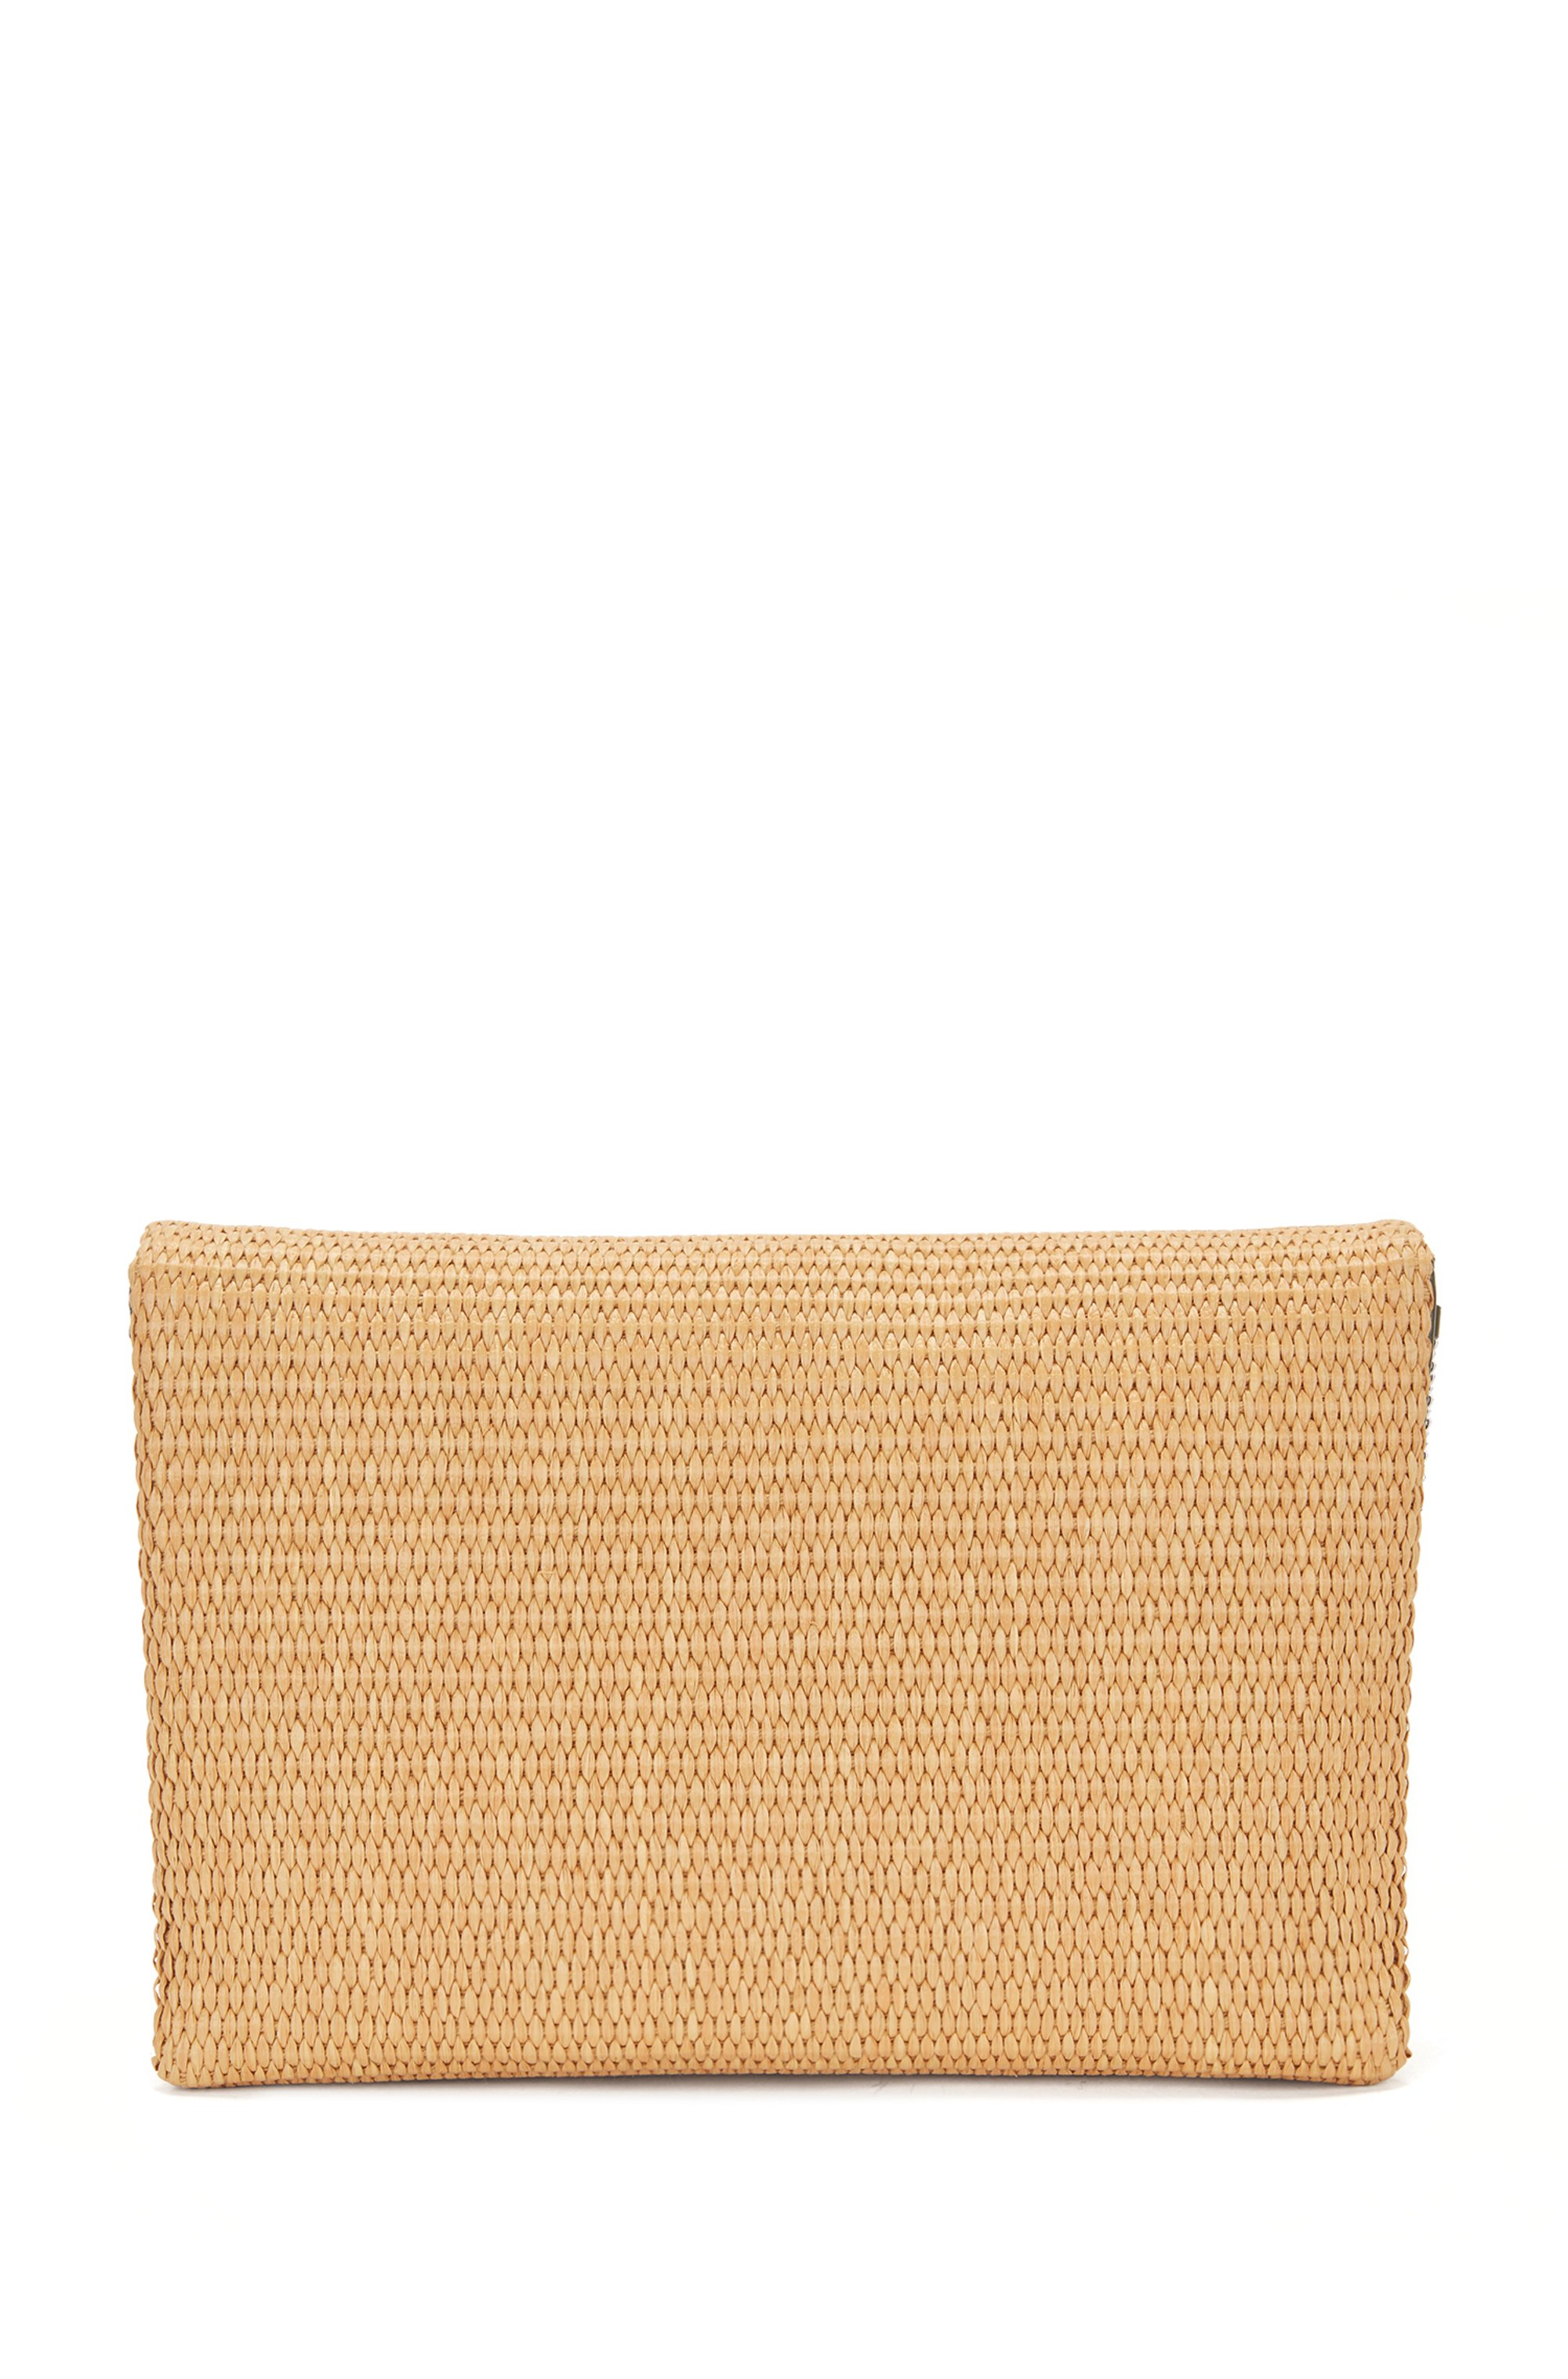 Raffia clutch bag with leather trims and chain strap